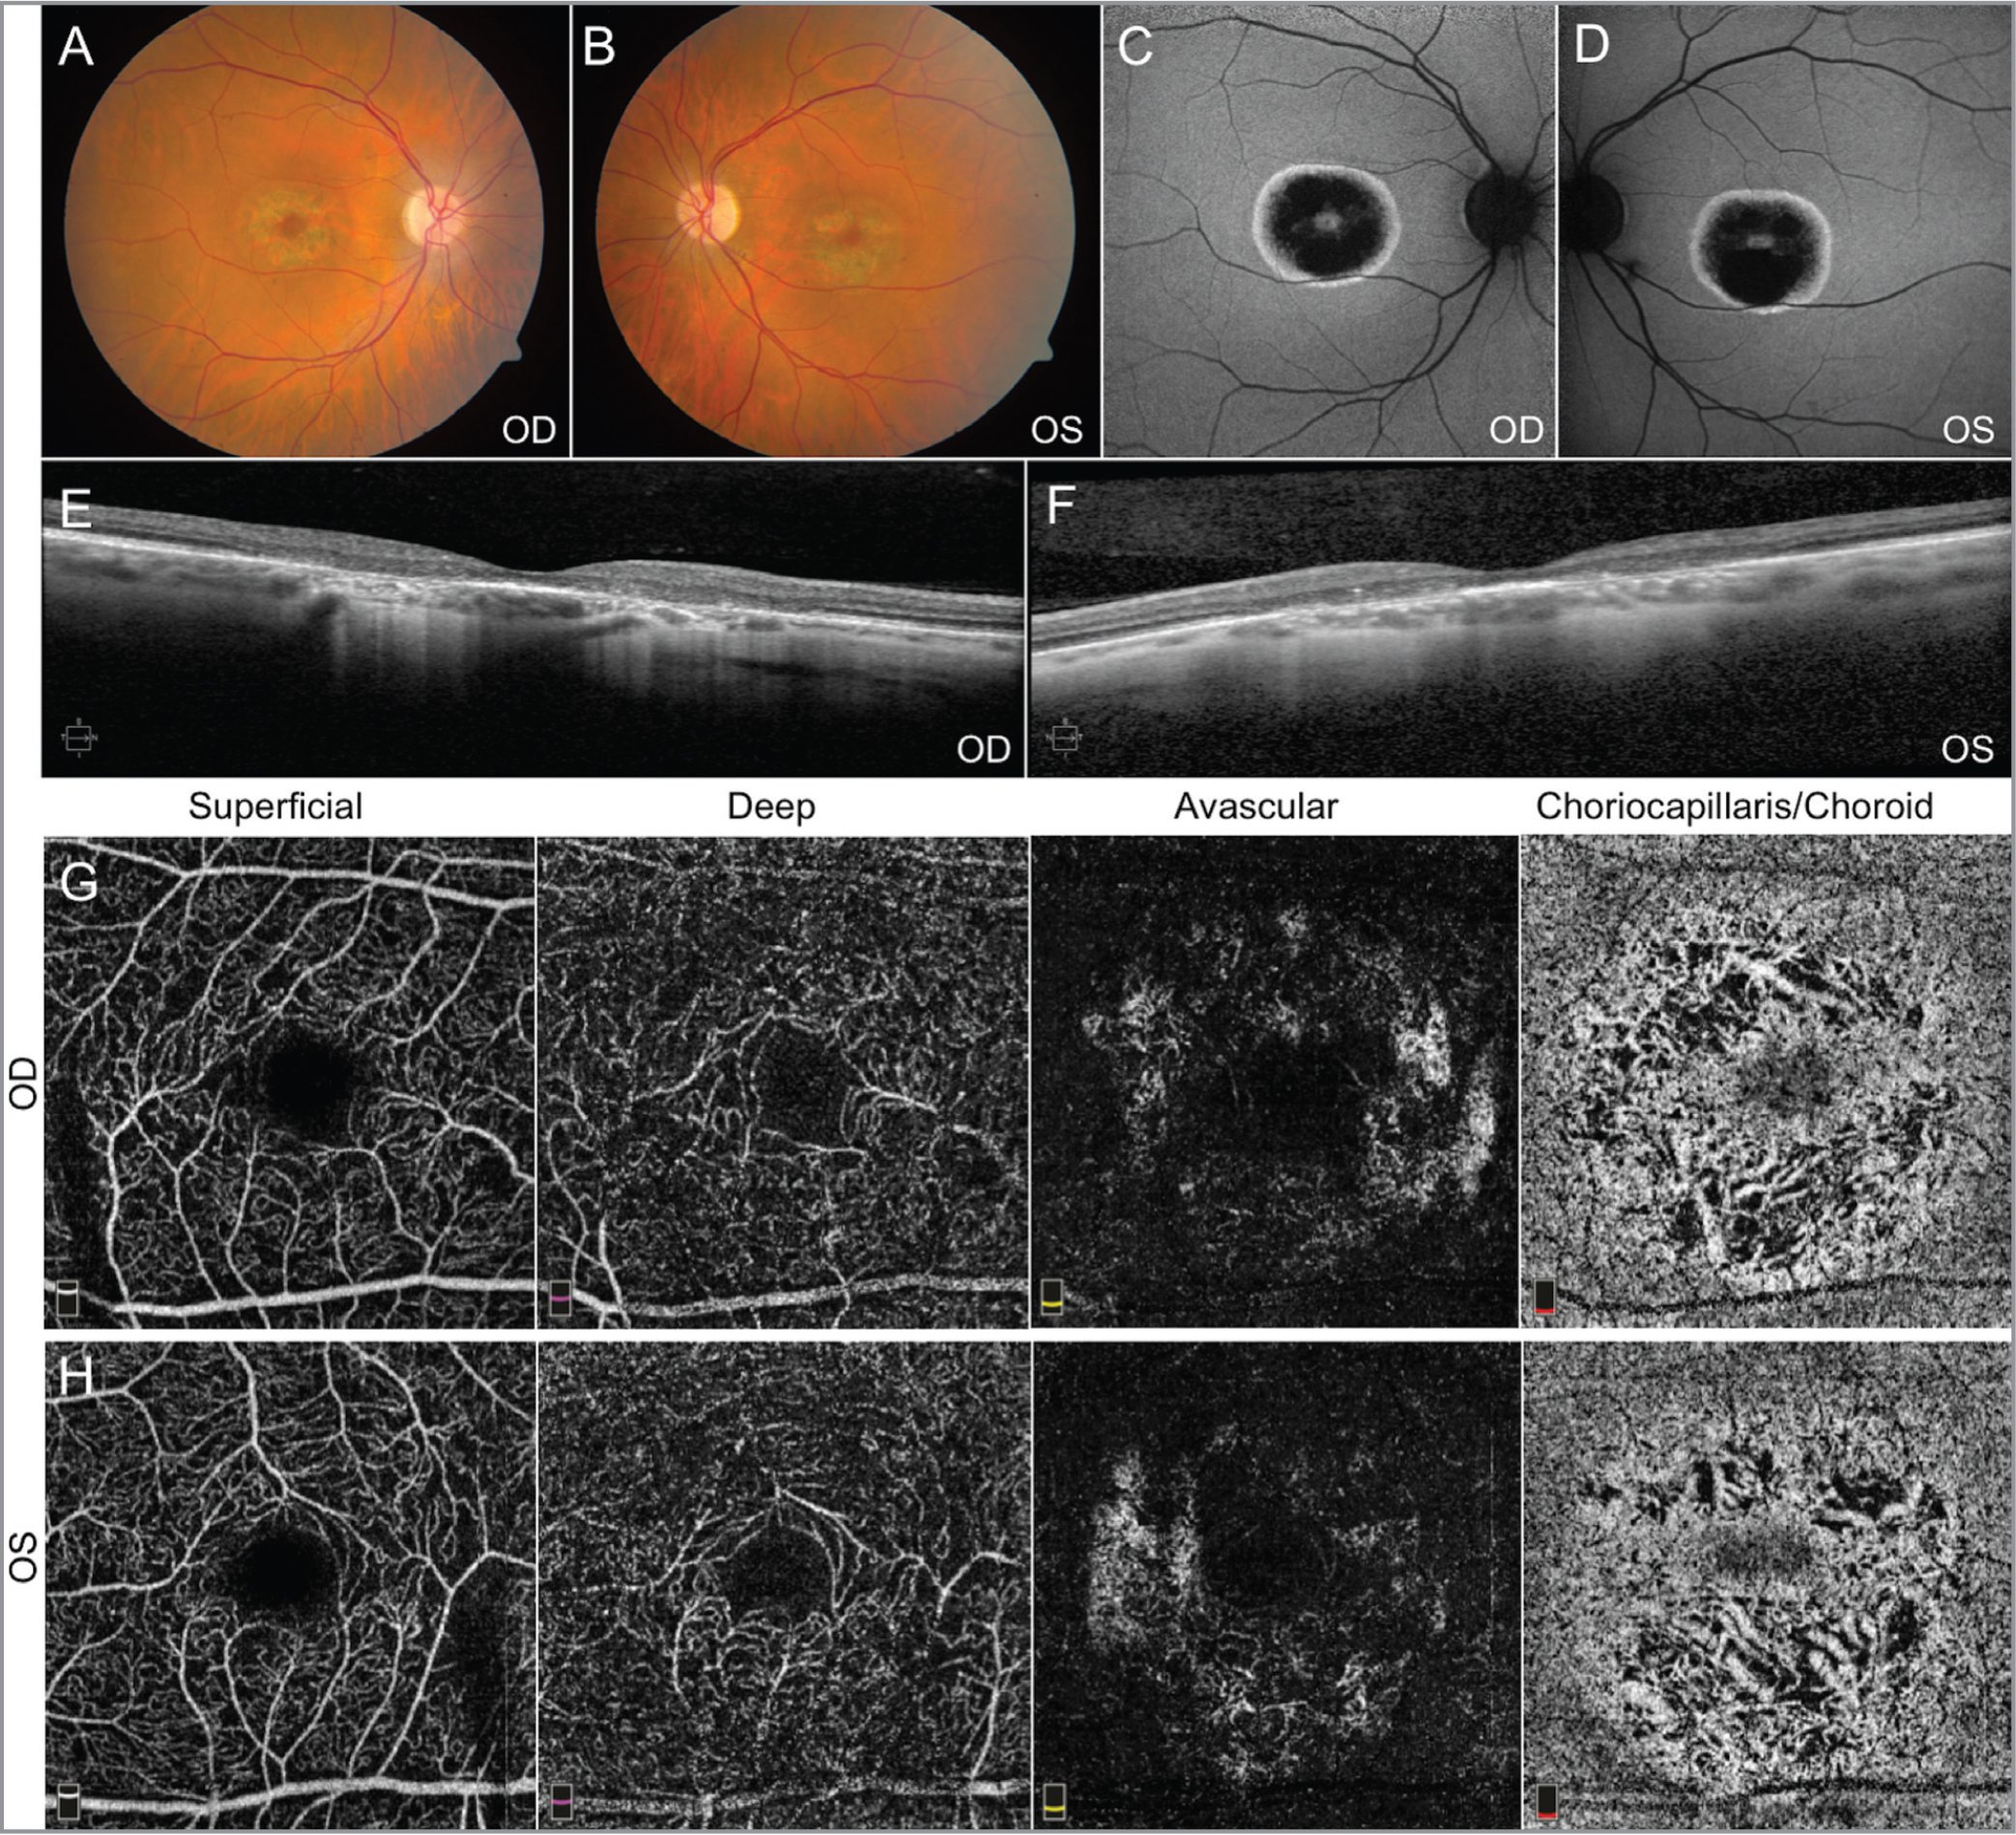 Fundus imaging from Patient 2. Fundus photos (A, B) and autofluorescence (C, D) demonstrate pigmentary changes with bull's-eye maculopathy. Spectral-domain optical coherence tomography (OCT) of the macula (E, F) is consistent with outer retinal degeneration. OCT angiography imaging (G, H) showed moderate attenuation of vasculature in the choriocapillaris/choroid layer. These findings appear more pronounced than those found in Patient 1.